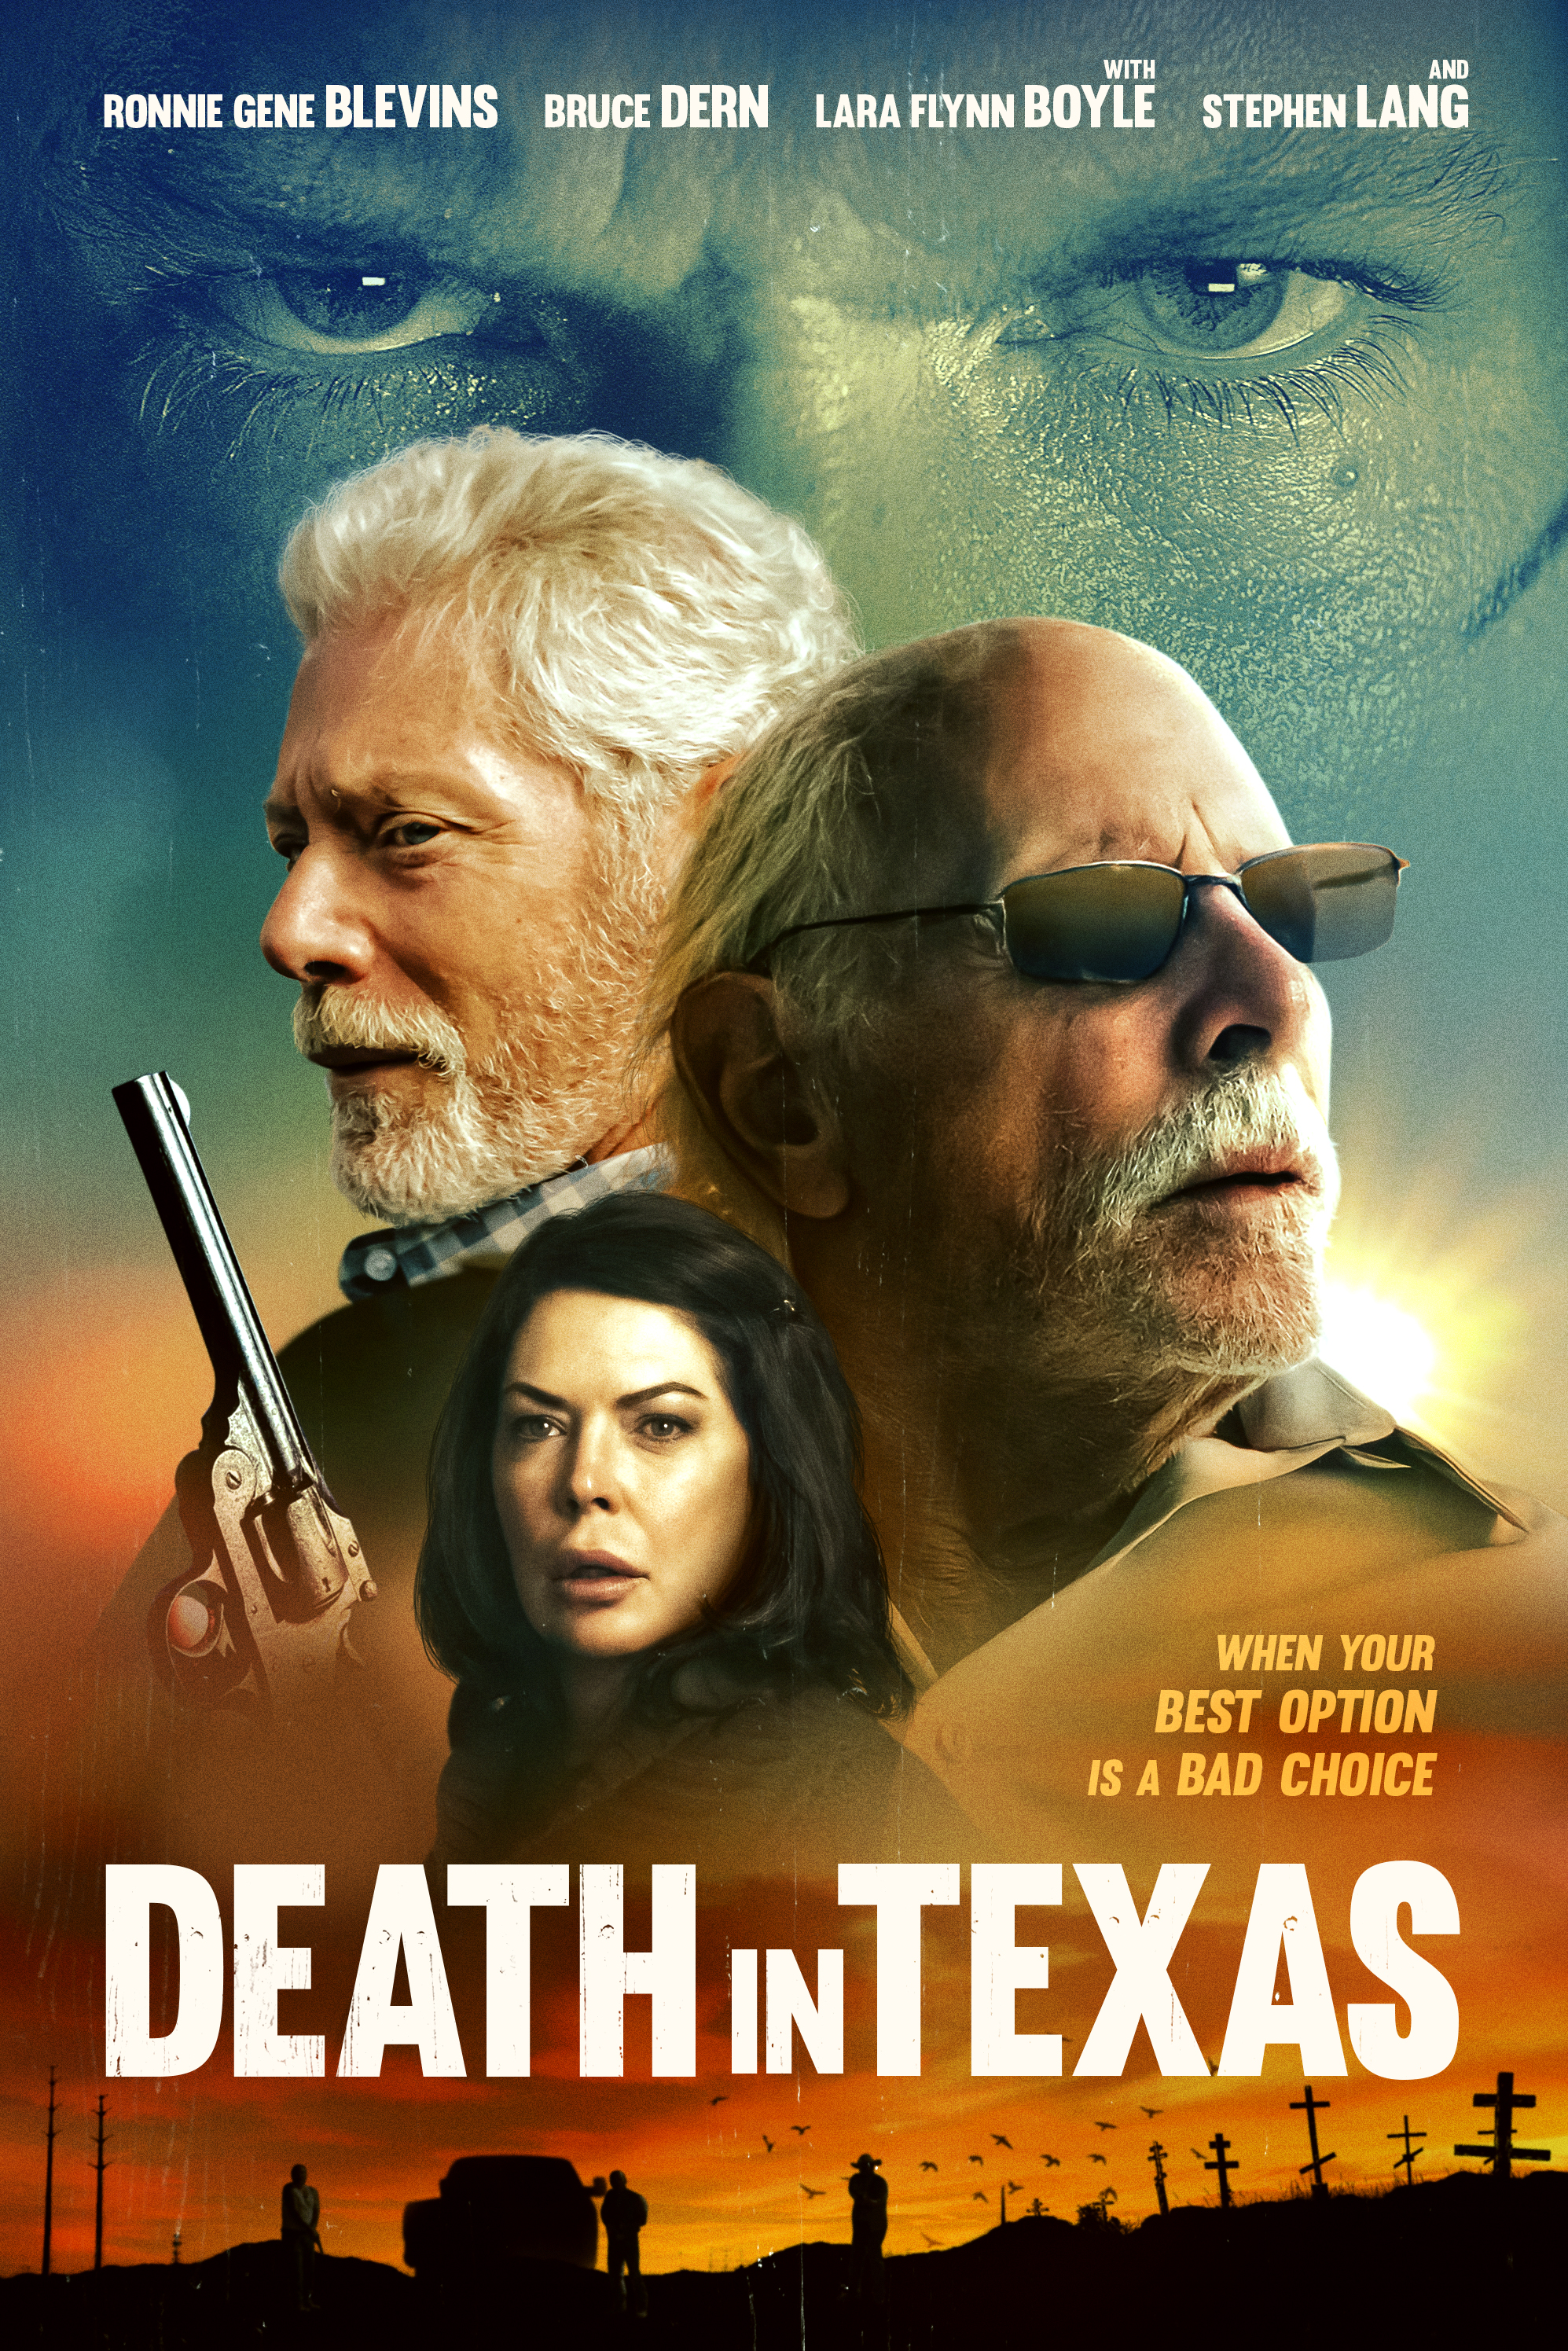 Download Death in Texas (2021) WebRip 720p Full Movie [In English] With Hindi Subtitles Full Movie Online On 1xcinema.com